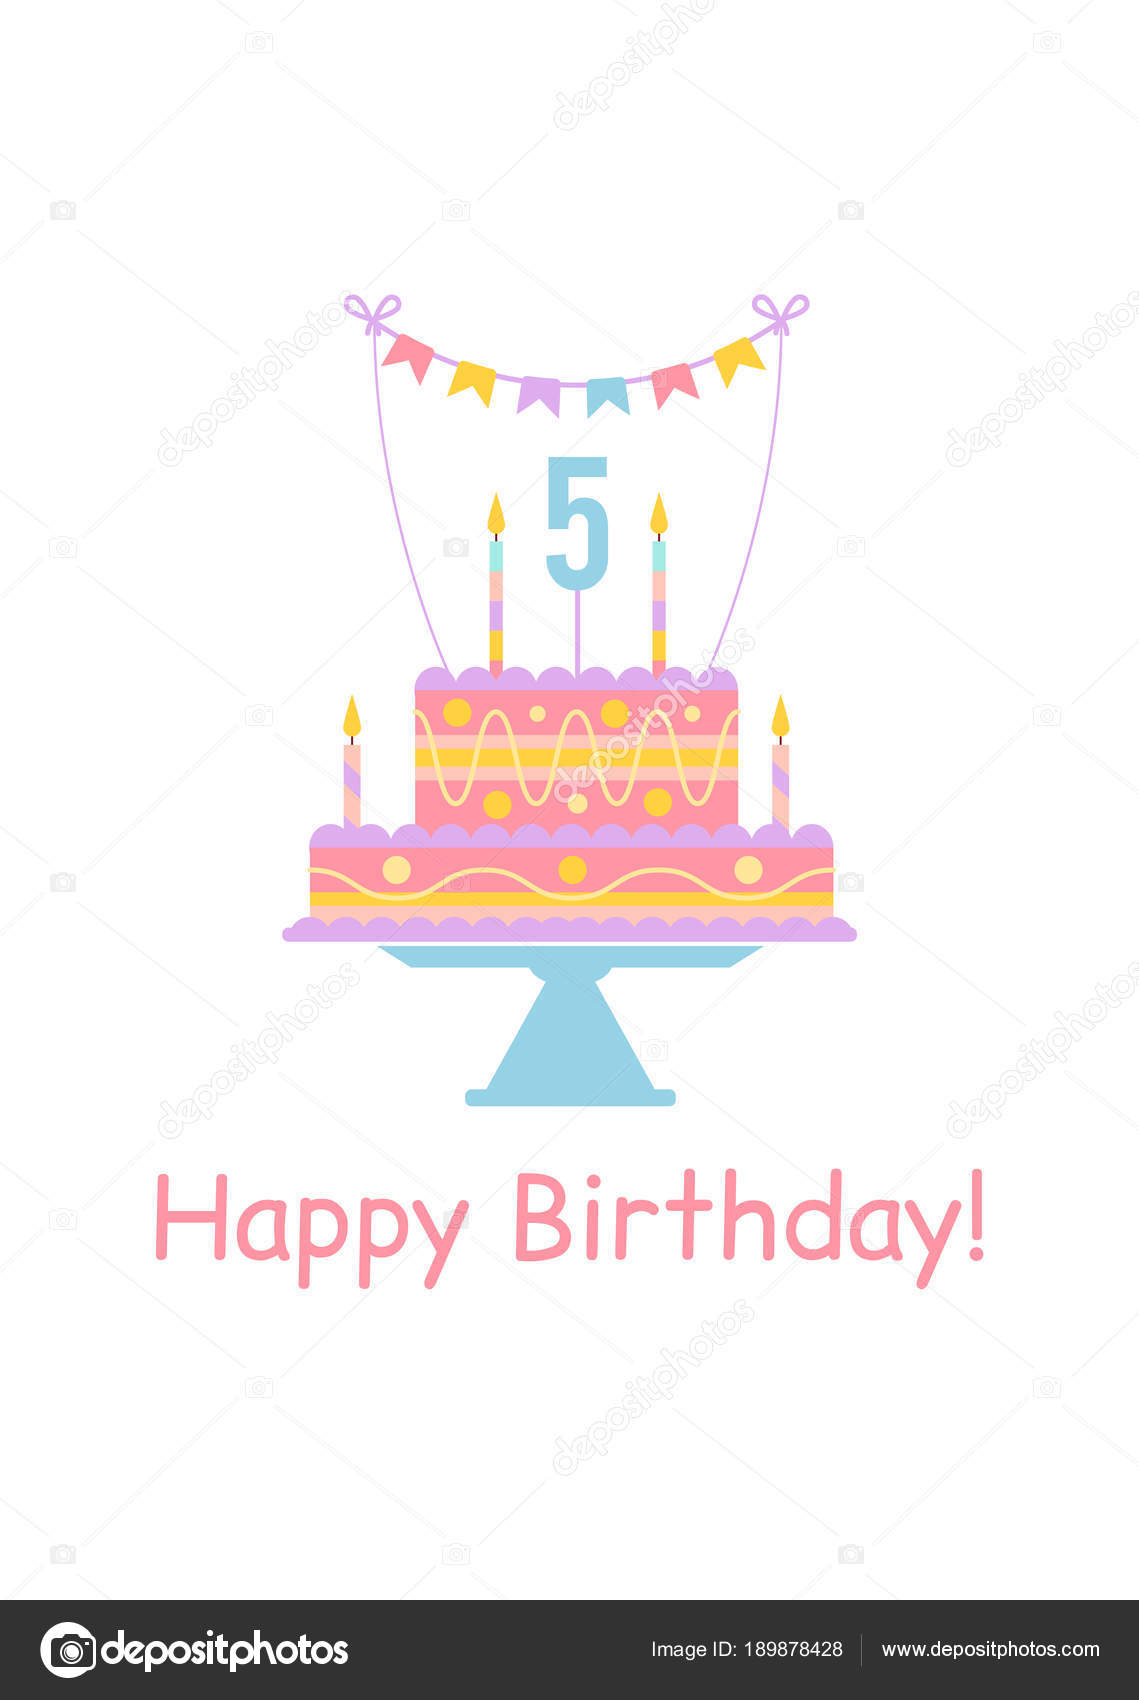 Cute Happy Birthday Card With Cake And Candles Stock Vector